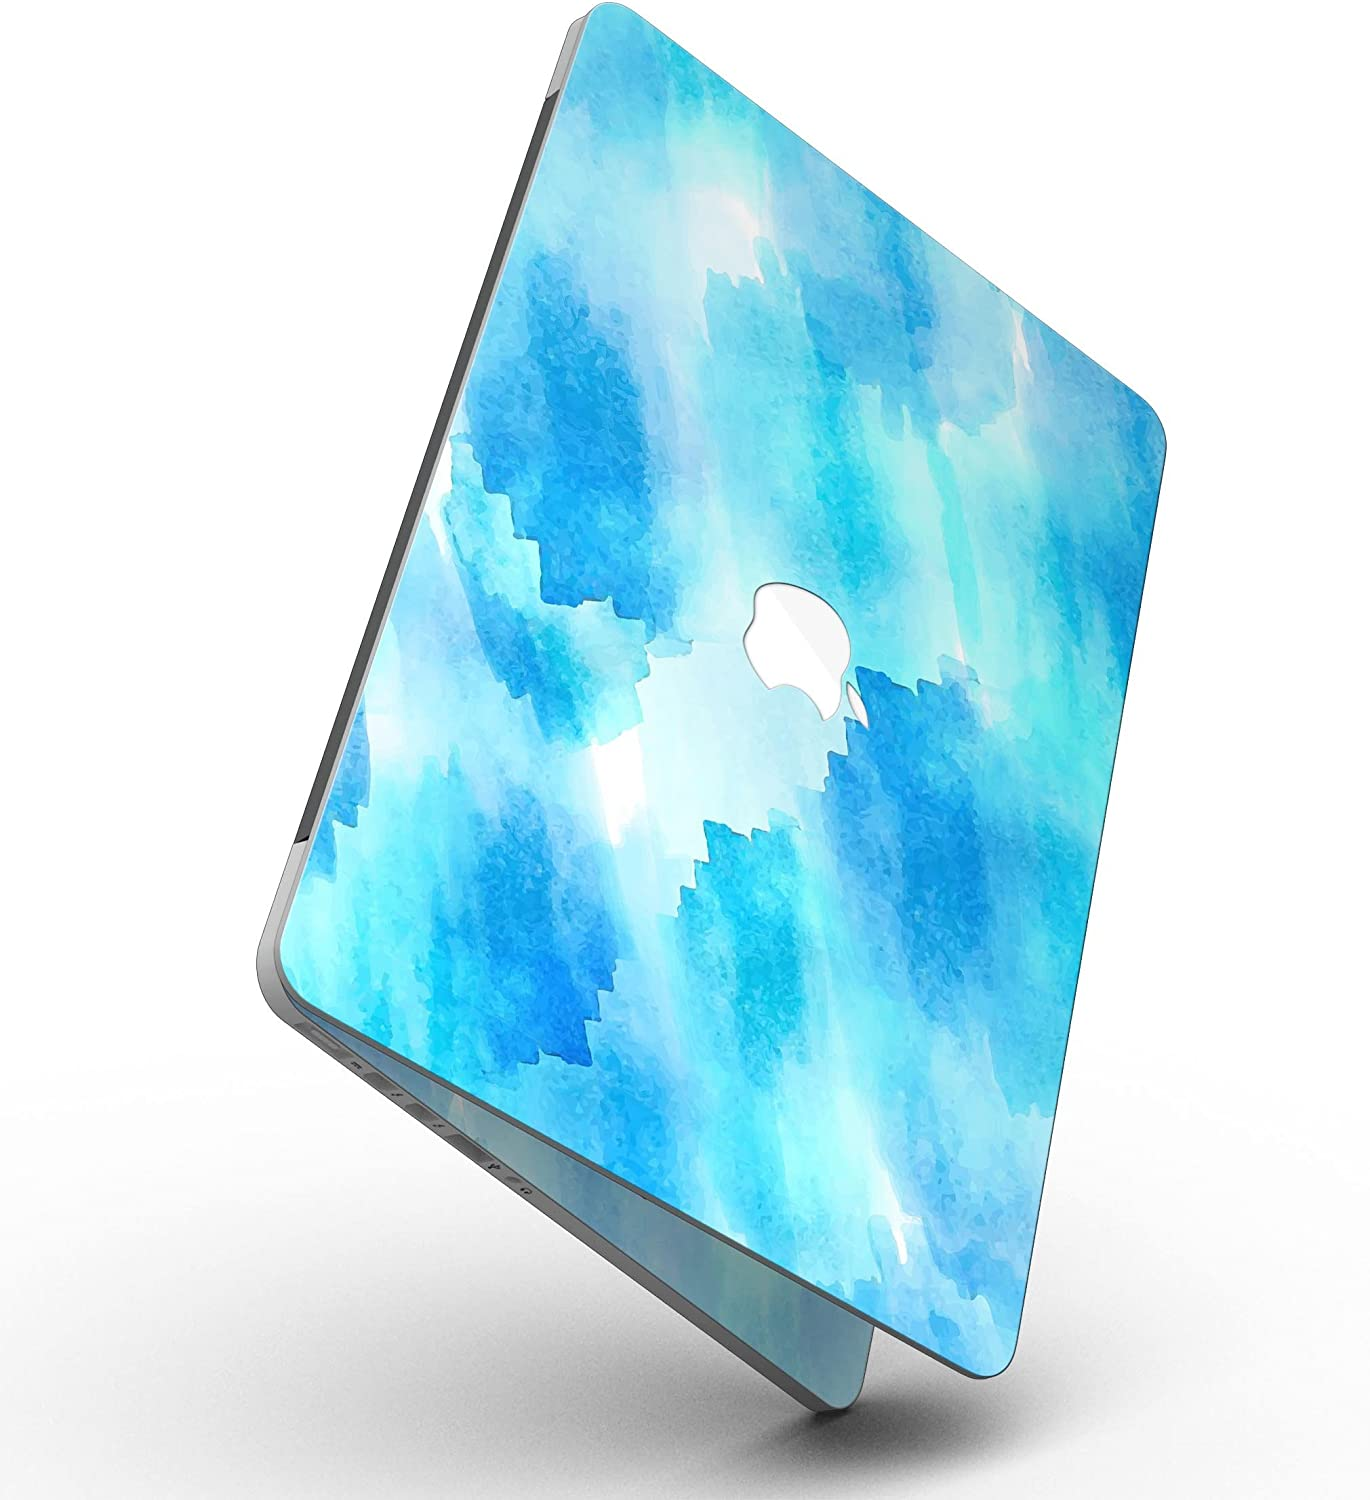 Designskinz-Abstract Blue Stroked Watercolour MacBook Pro with Retina Display Full-Coverage Skin Kit-Screen Trim /& Keyboard Skins//Ultra Gloss-Abstract Blue